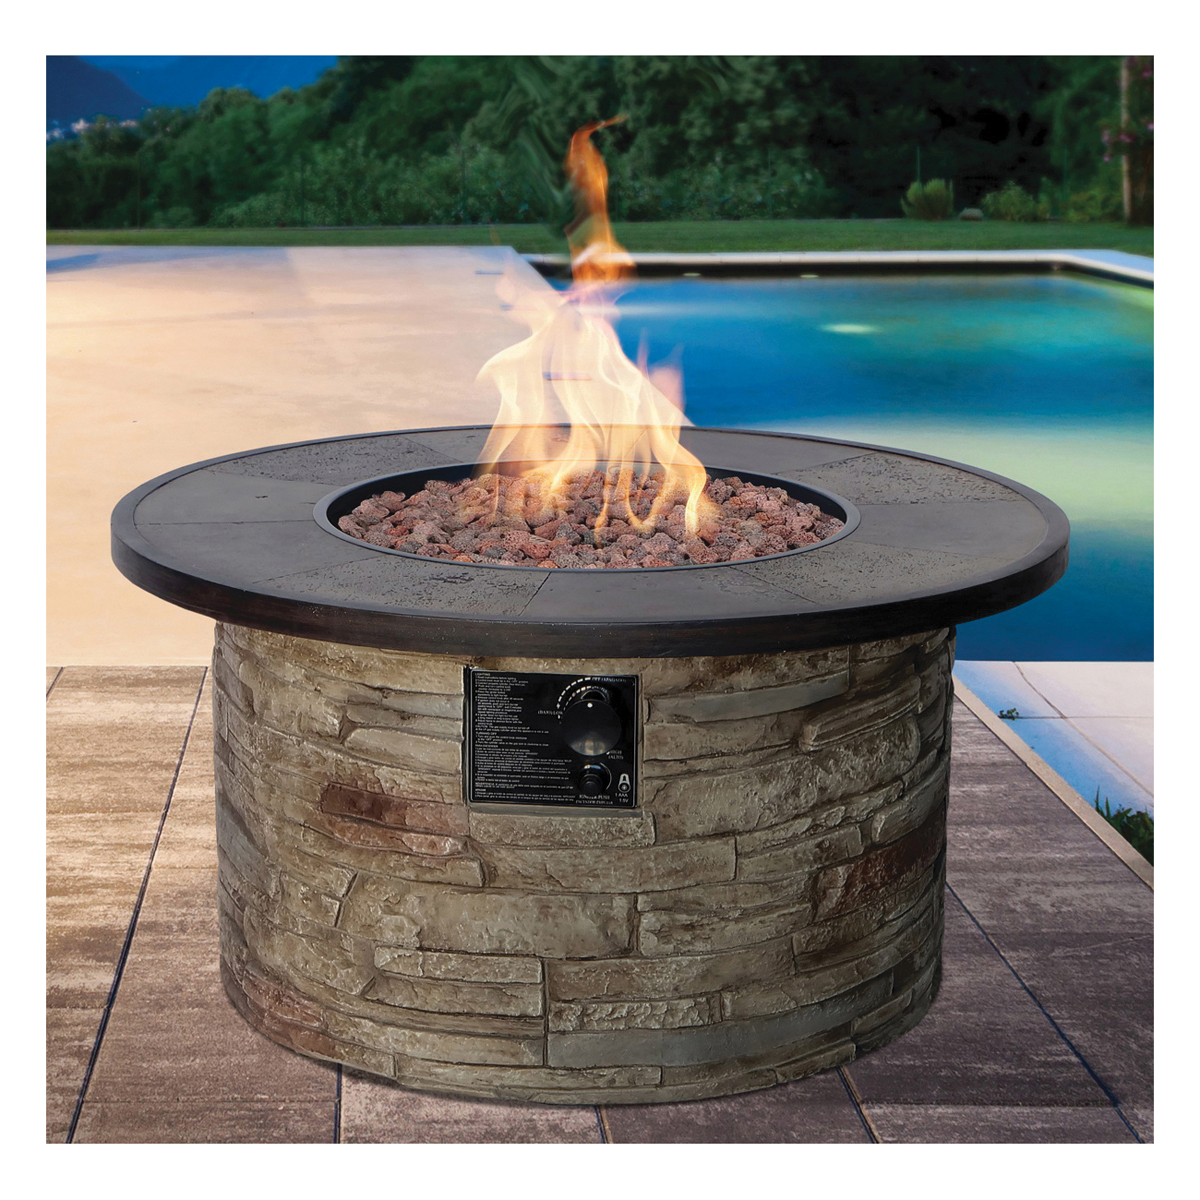 Picture of Seasonal Trends 50167 Monterey Fire Patio Table, 31.90 in OAW, 31.90 in OAD, 17.70 in OAH, Impulse Ignition Ignition